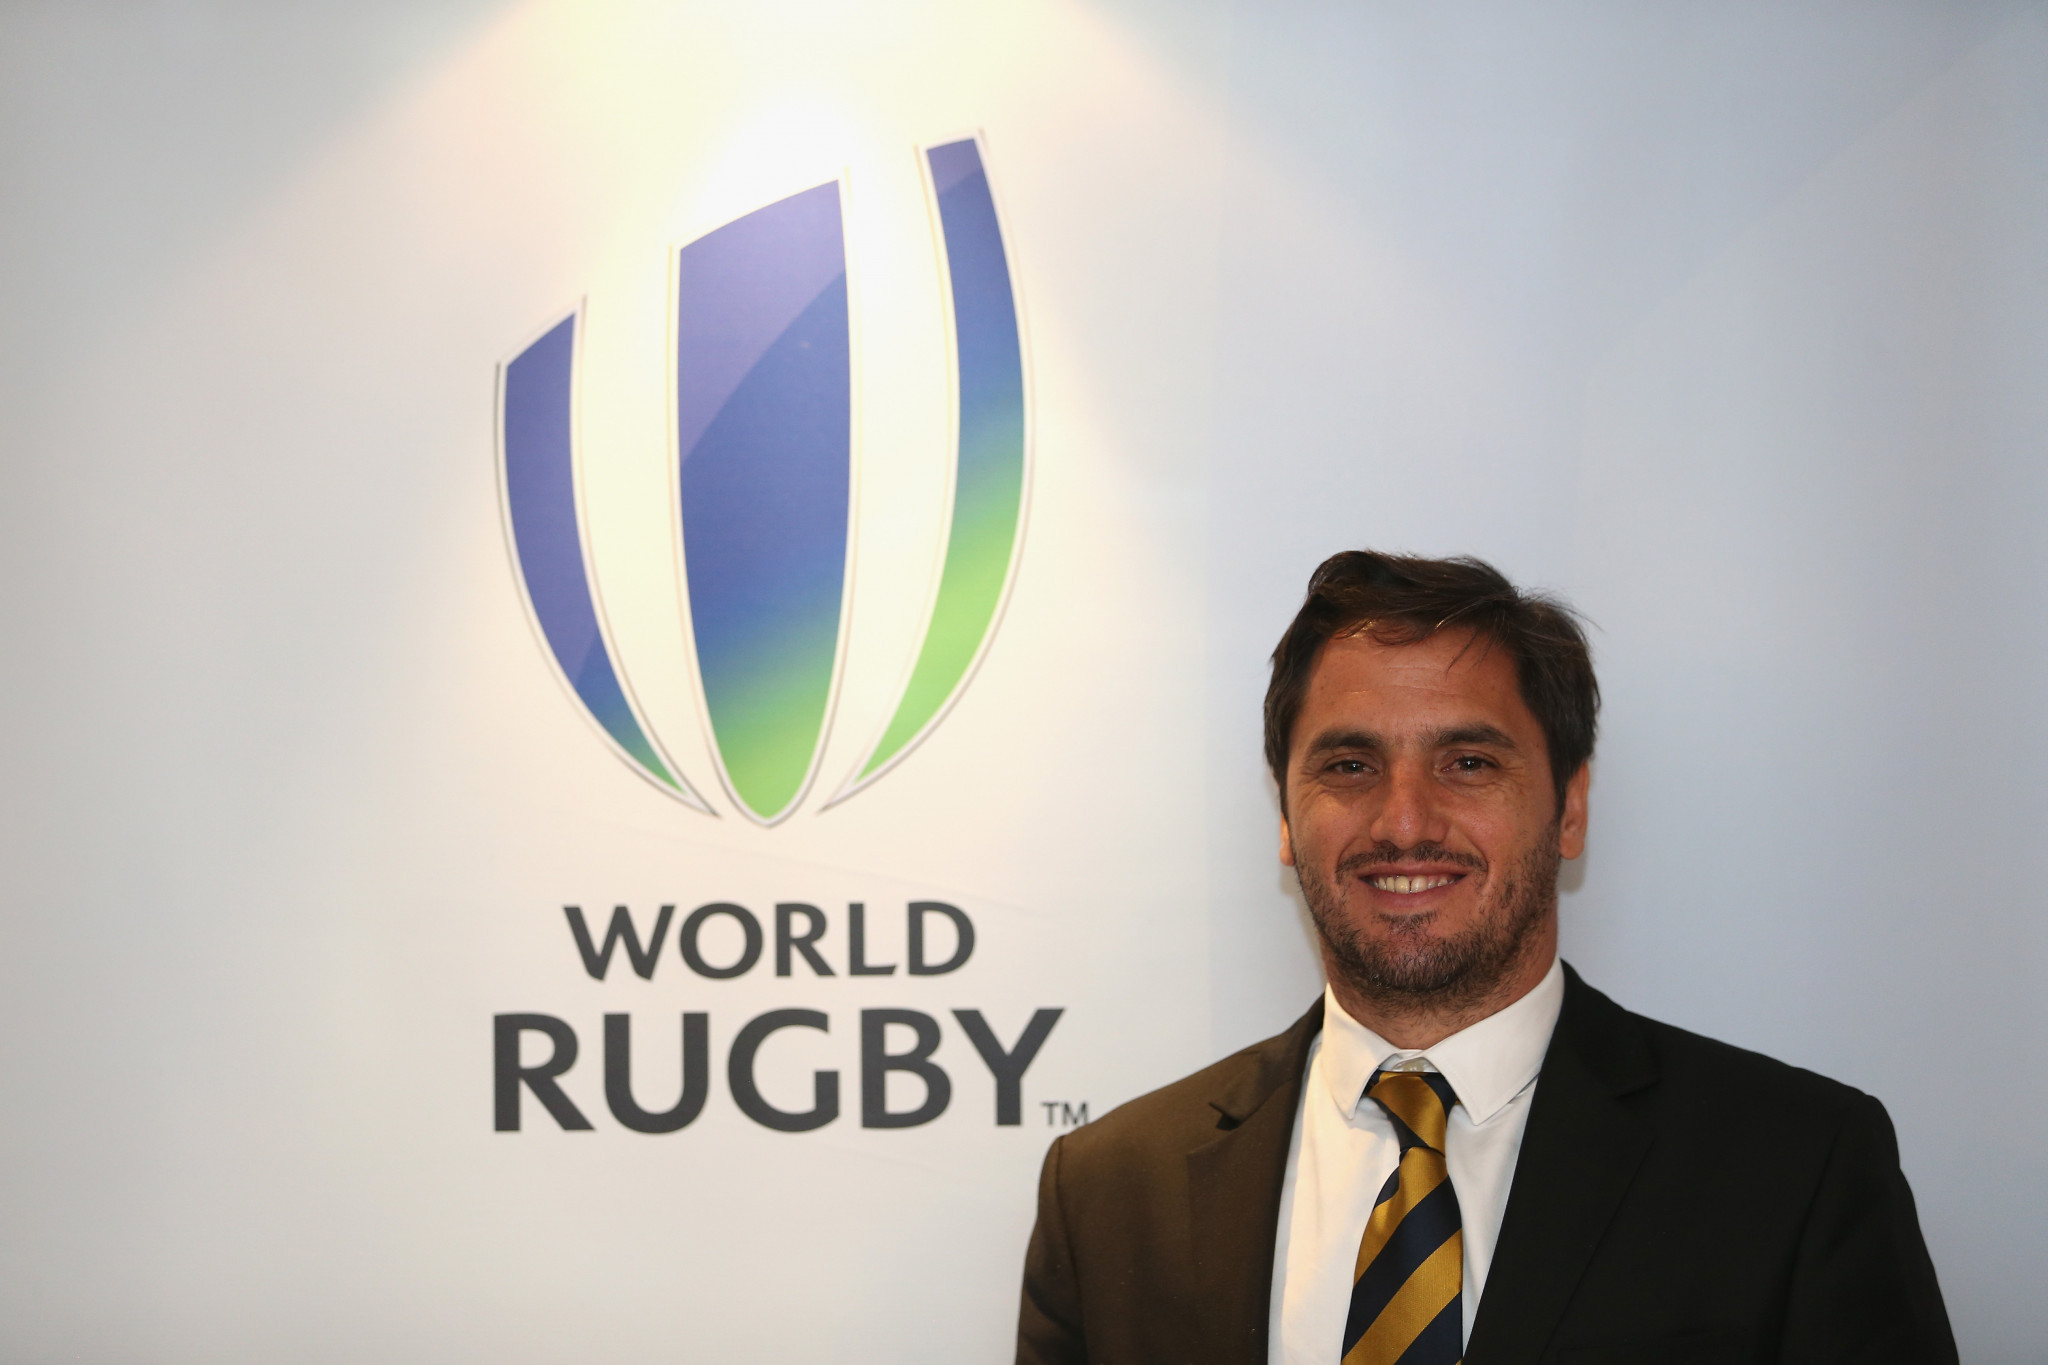 Agustin Pichot, the vice-chairman of World Rugby: